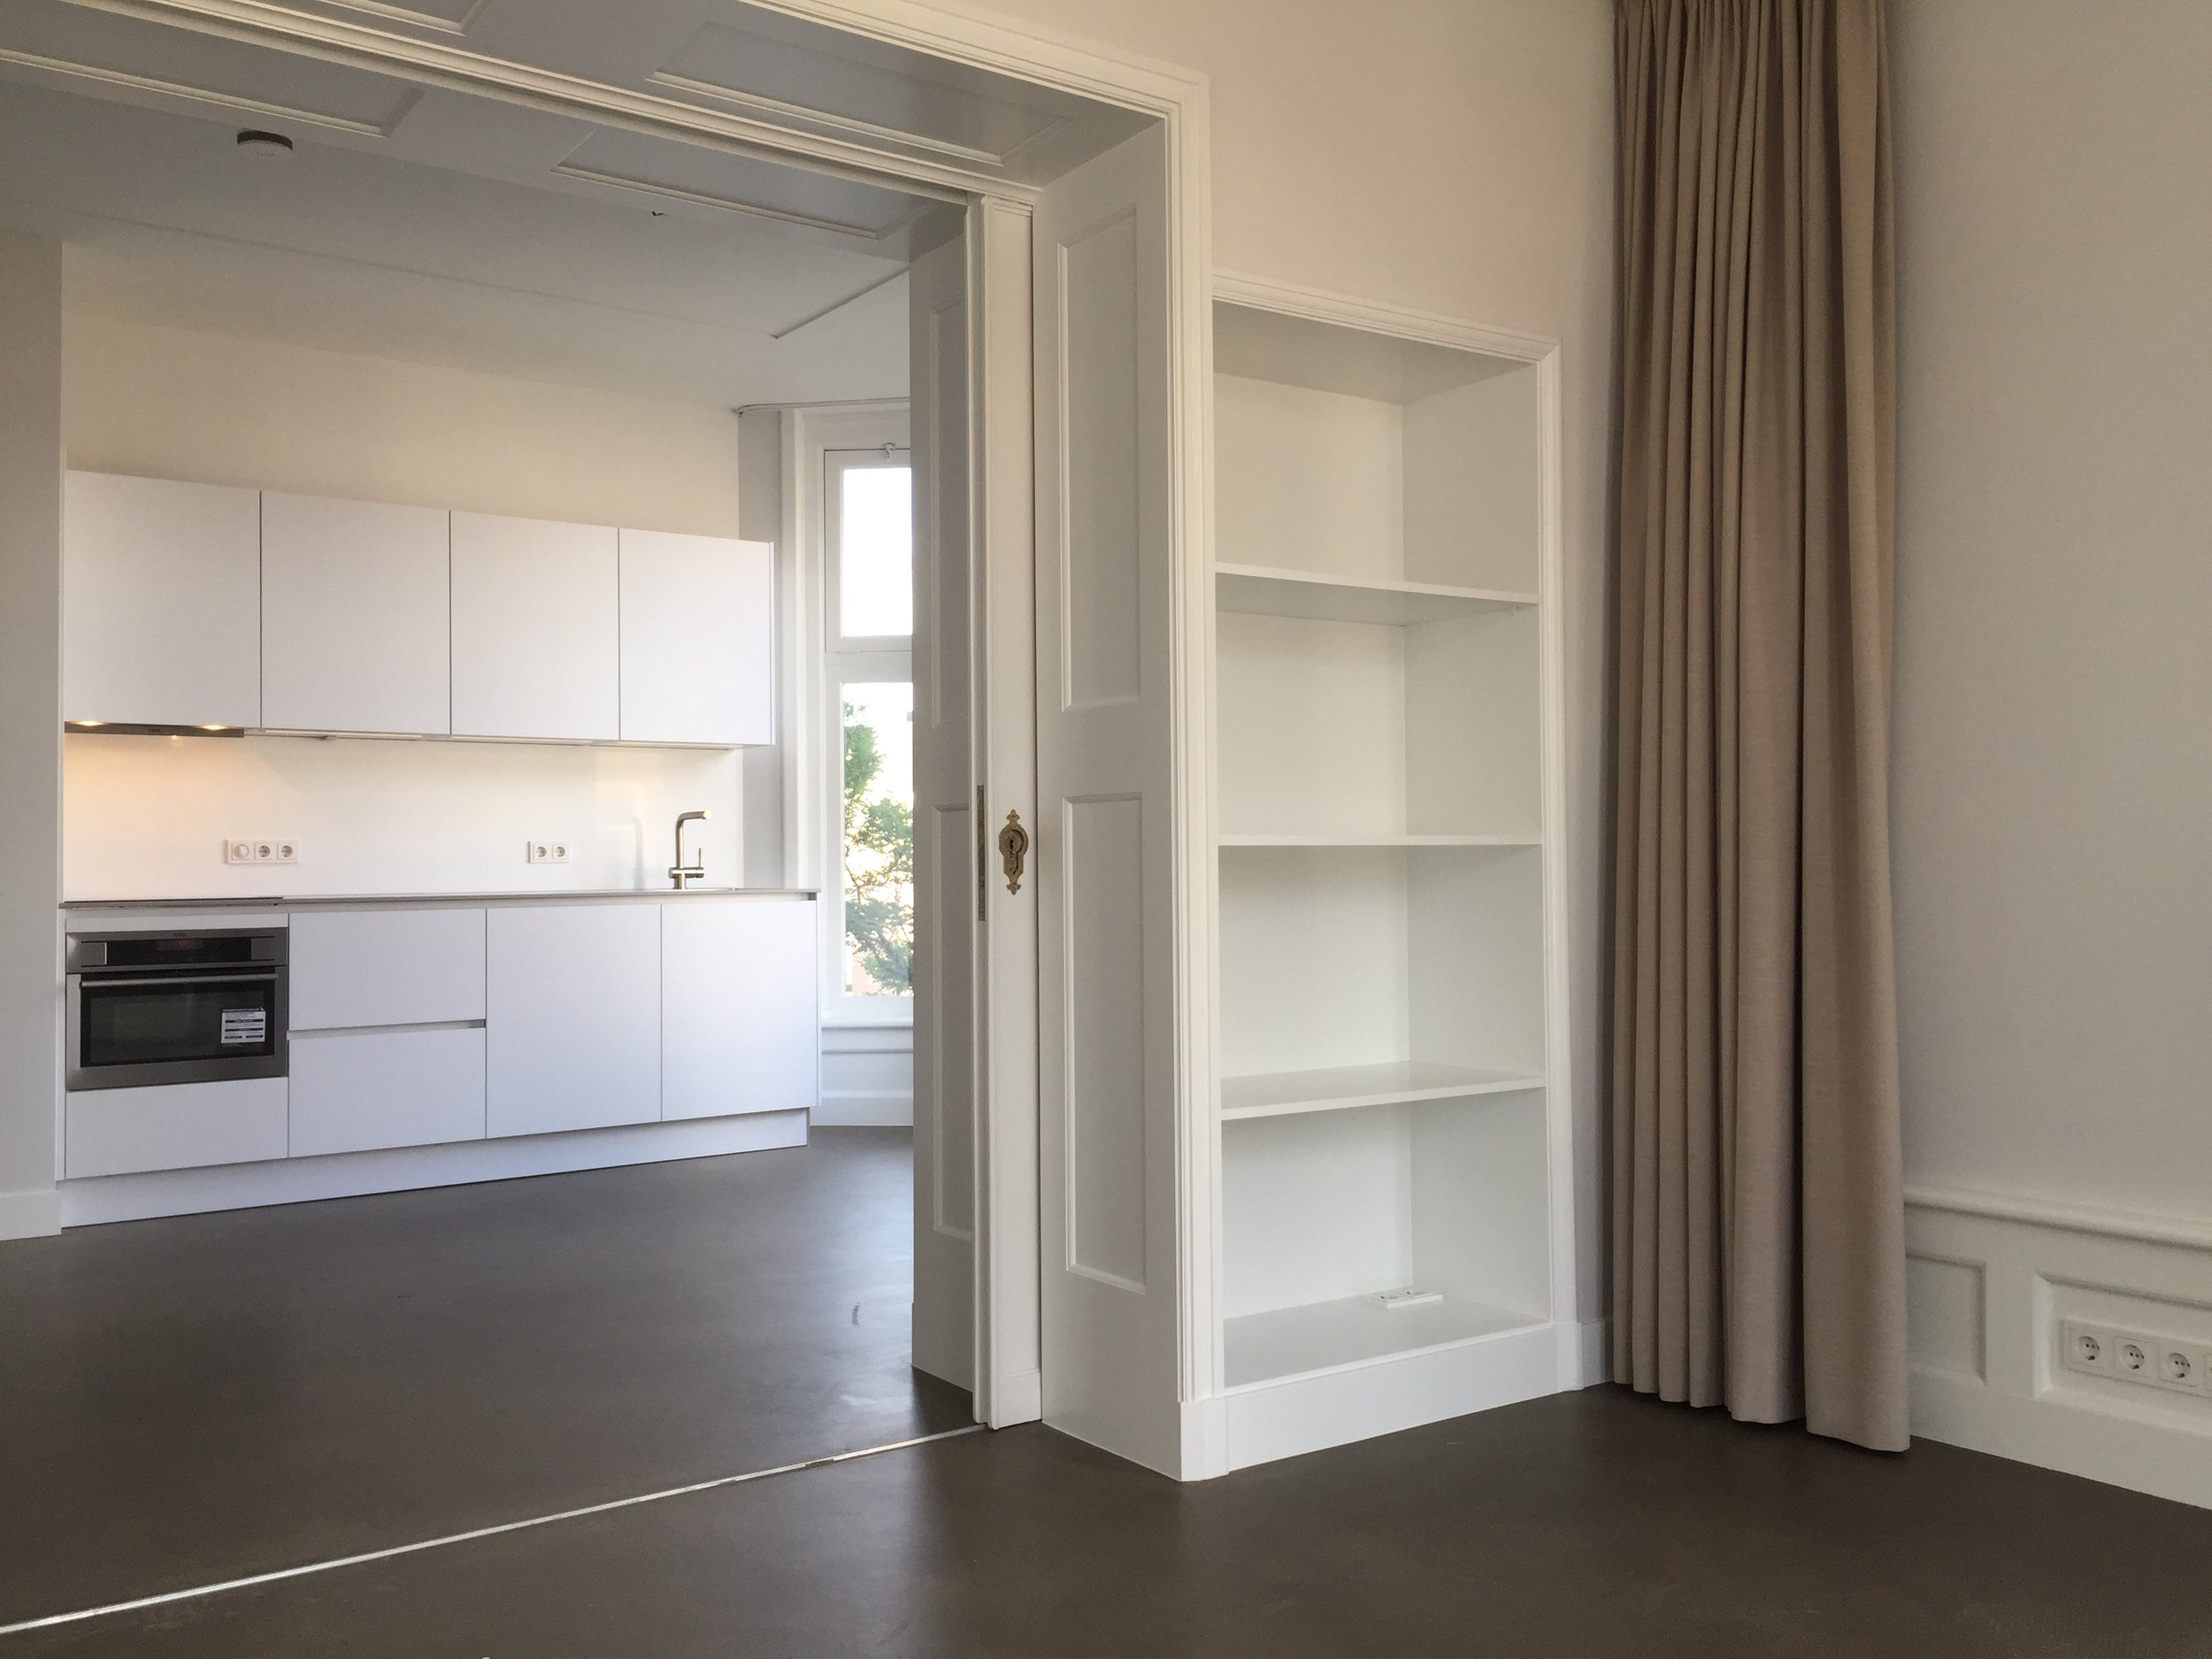 the classical ensuite separation was restored, allowing the apartments to keep their classical feel